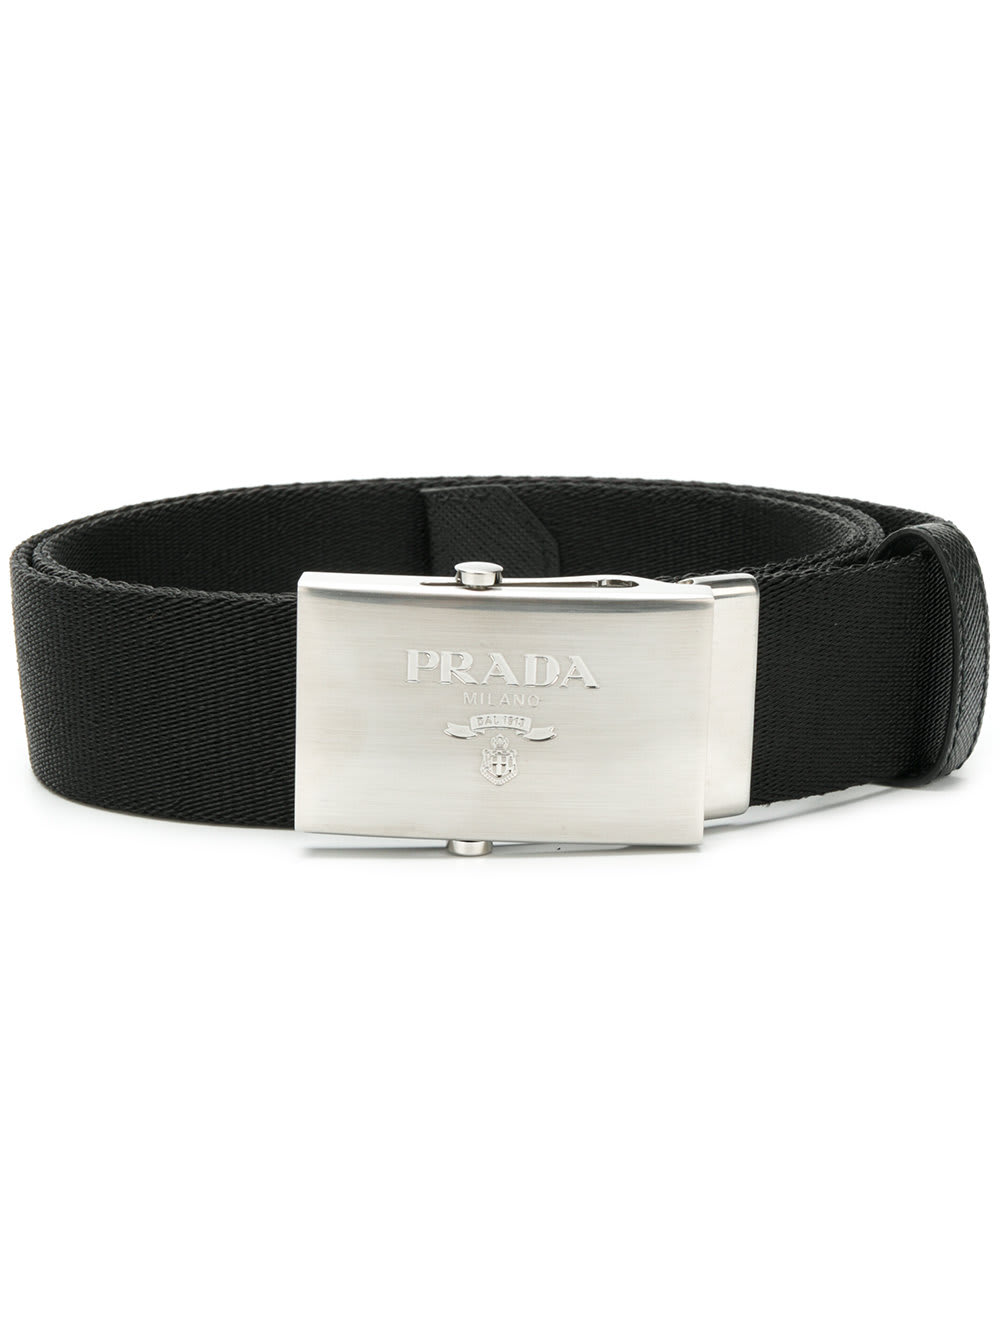 Prada Nylon Logo Belt